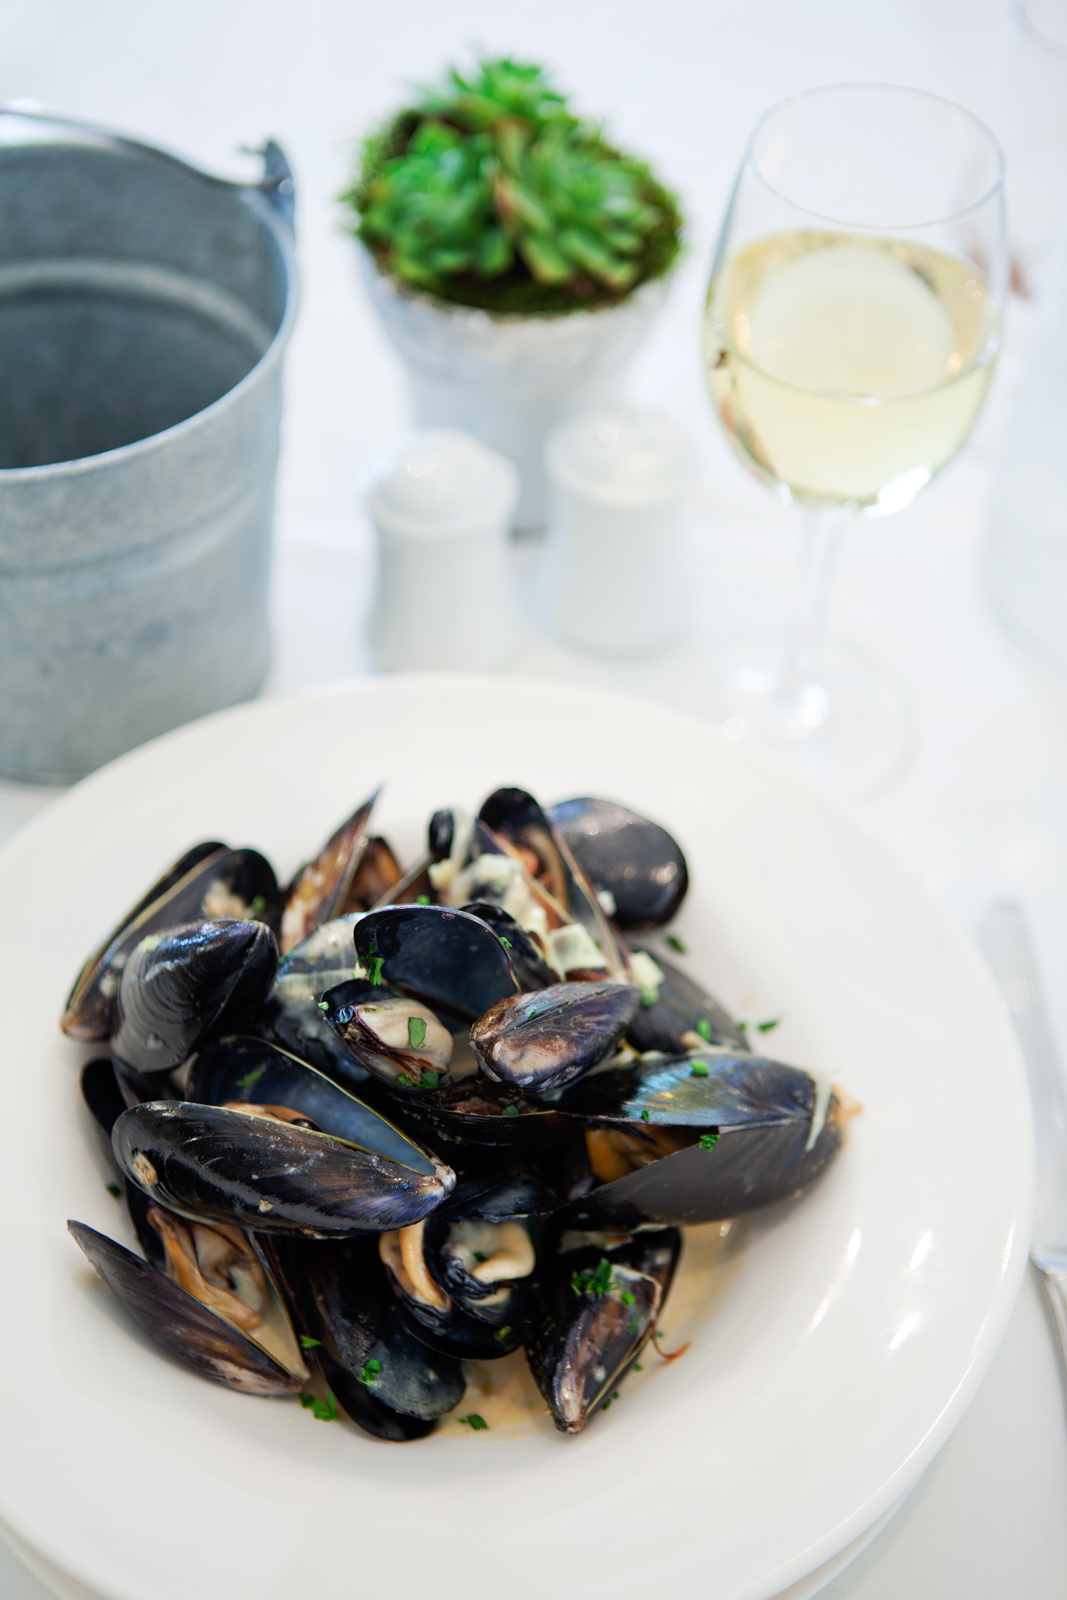 Mussels in white wine, braised leeks, shallots and cream sauce.